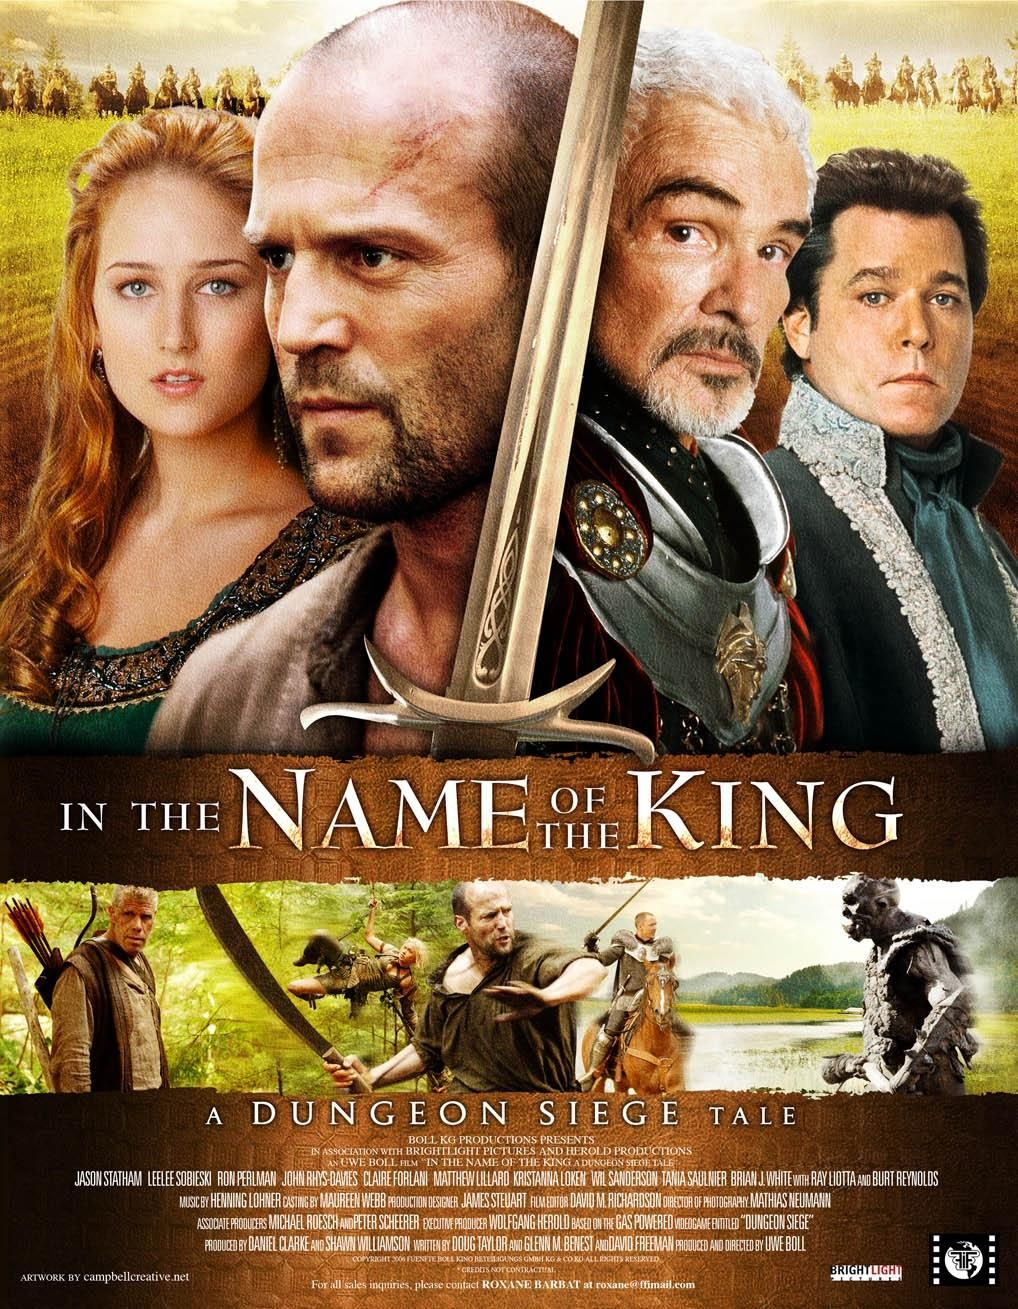 """In the Name of the King - A Dungeon Siege Tale"" poster."